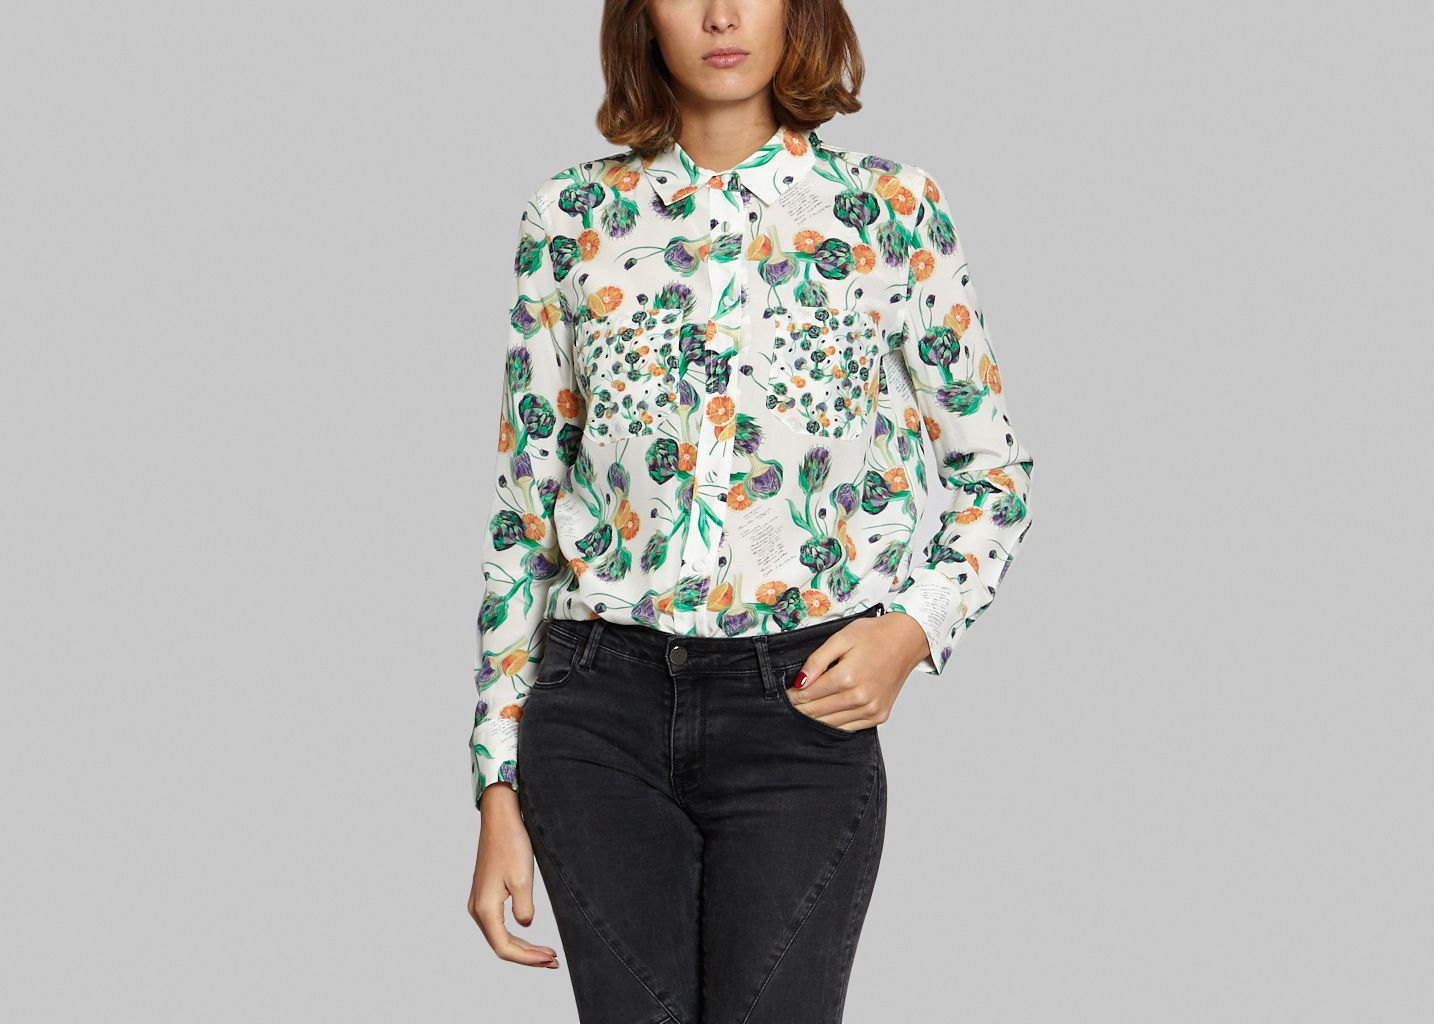 846d5fd5e7932 Granny Shirt GreenSoi Paris